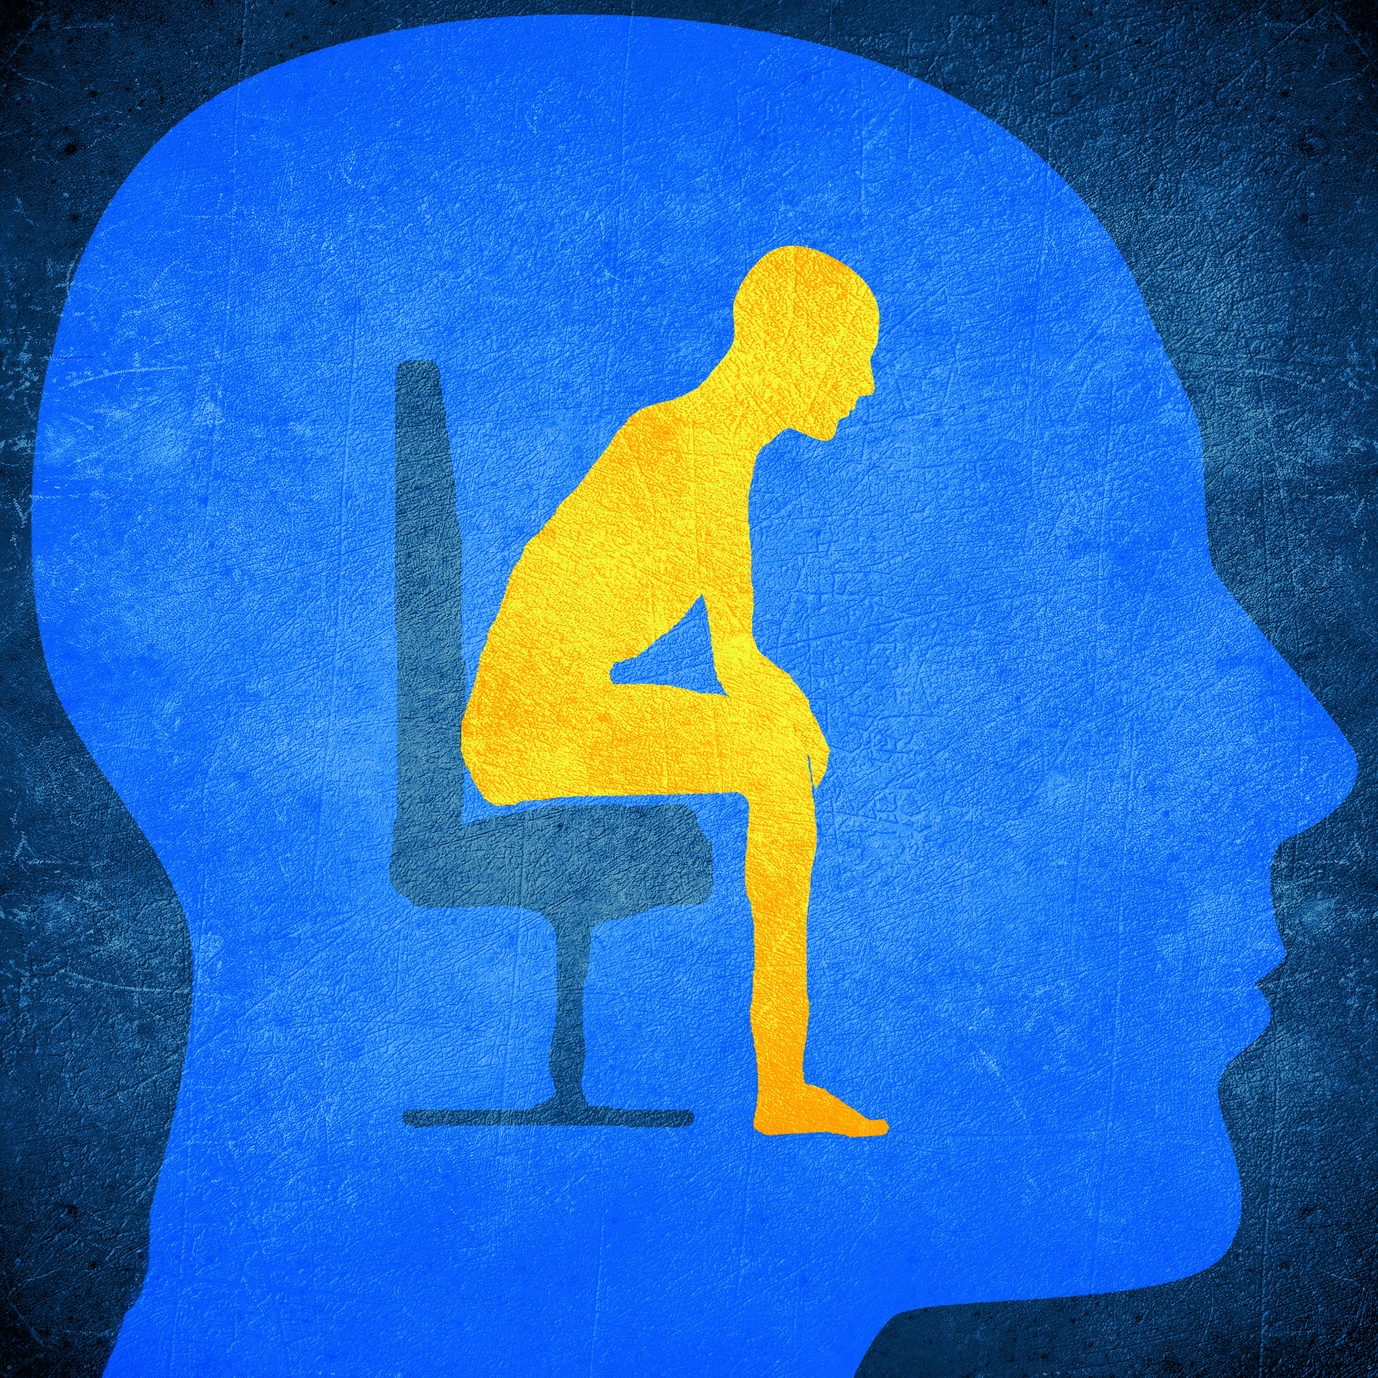 blue human head silhouette with a man sitting inside psycology concept